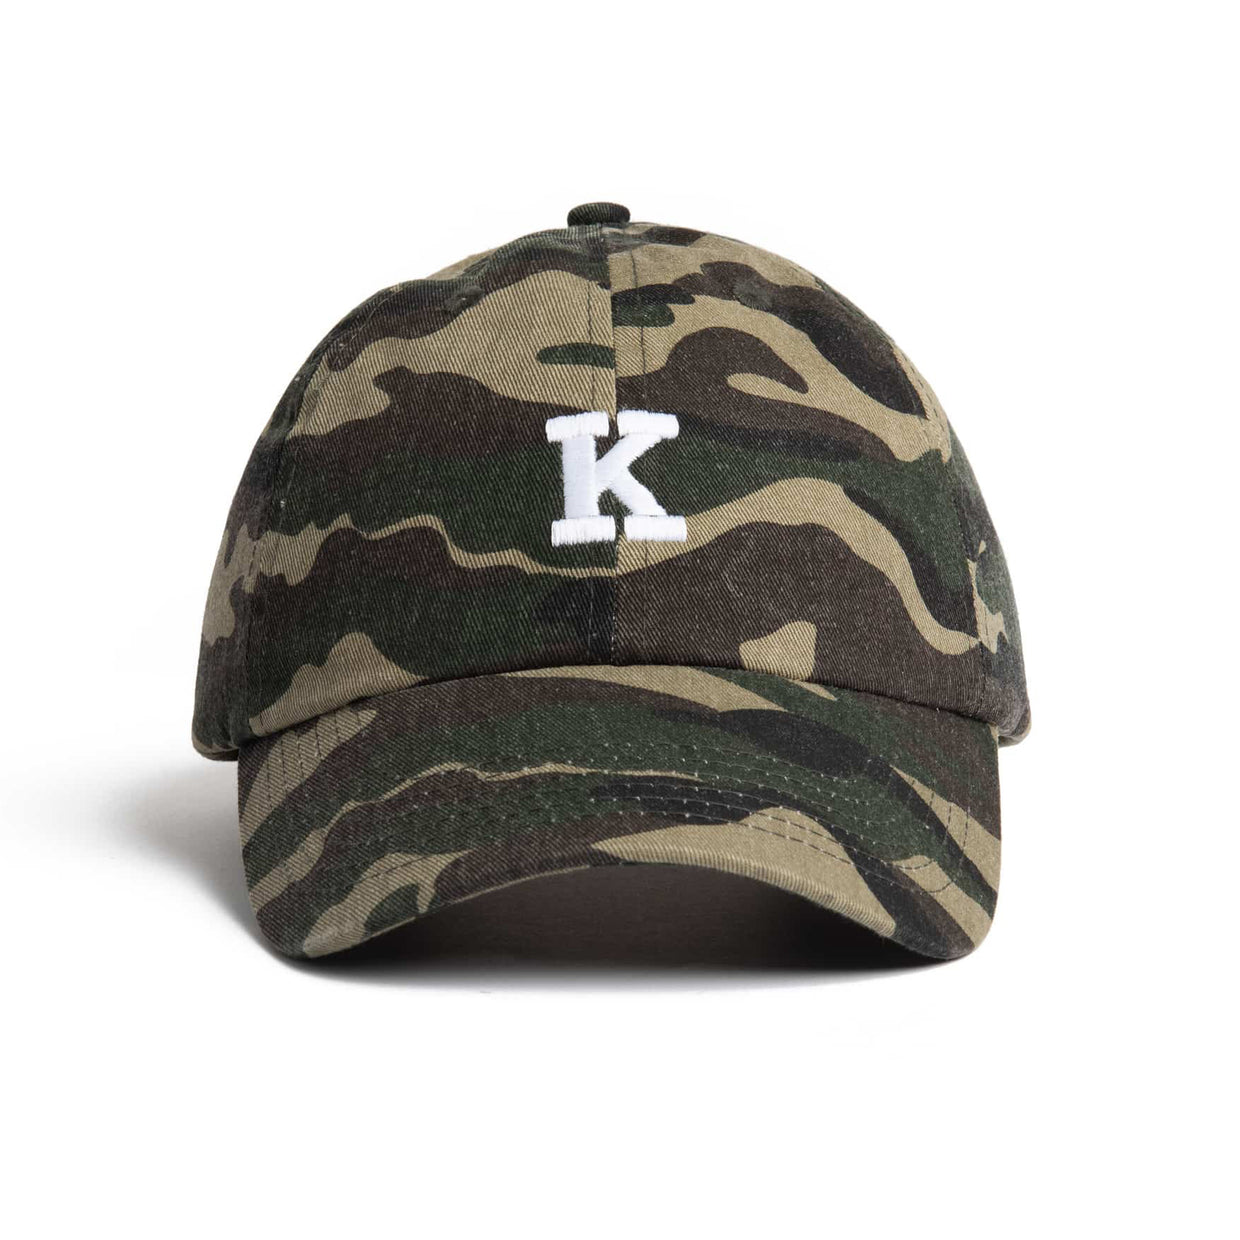 'K' Logo Dad Hat - Camo